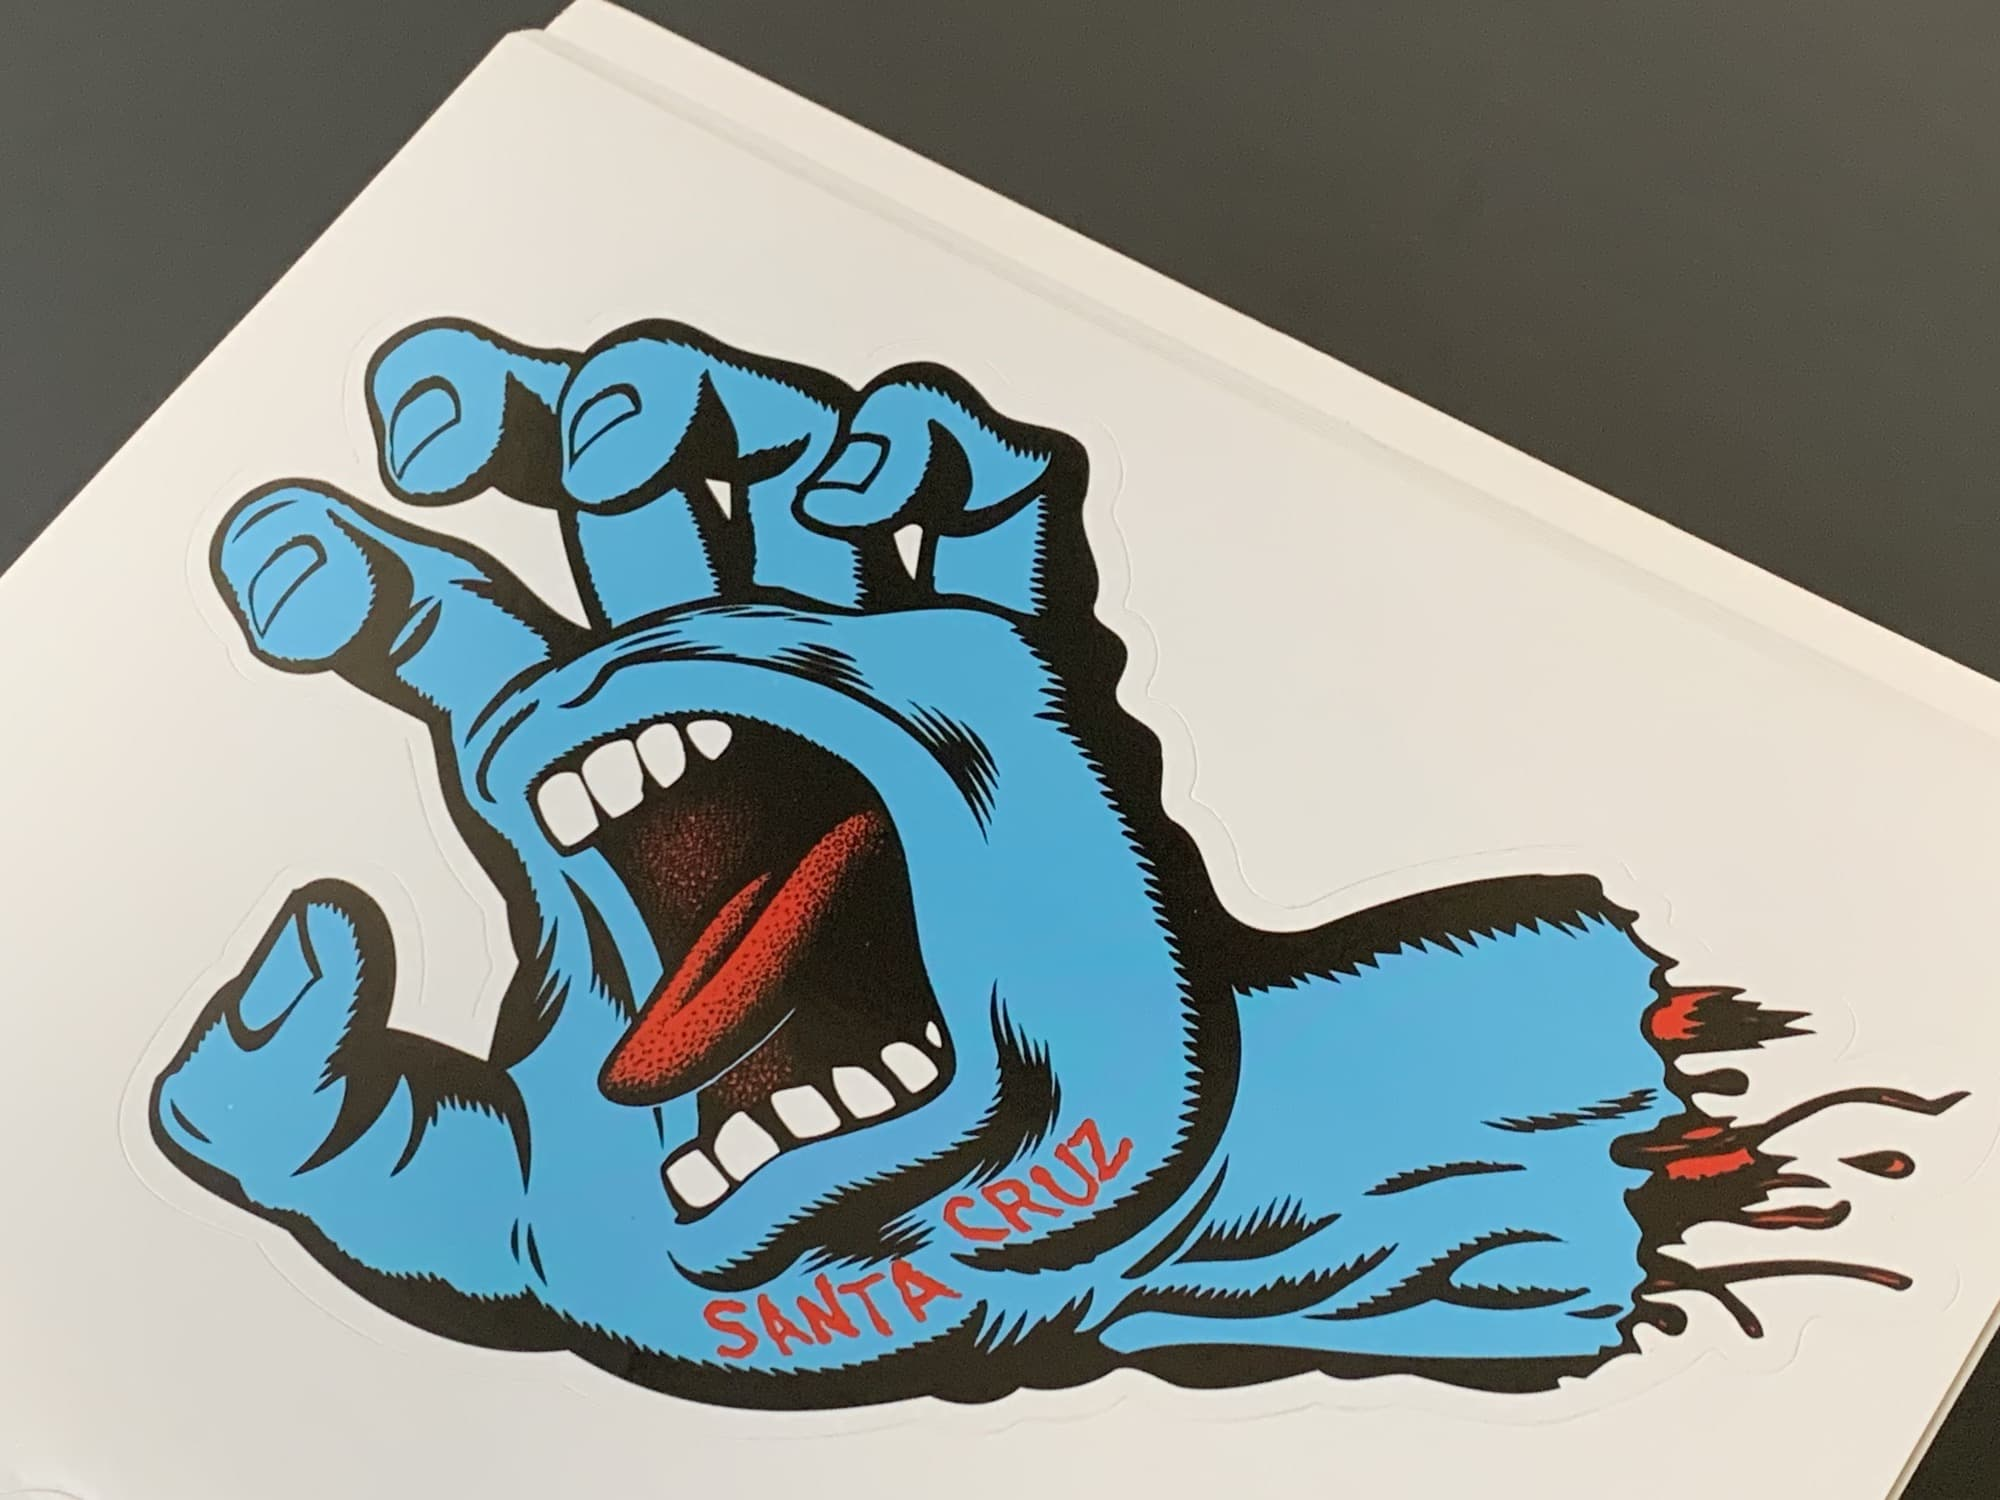 The Santa Cruz Screaming Hand is an excellent skateboard sticker for your MacBook.